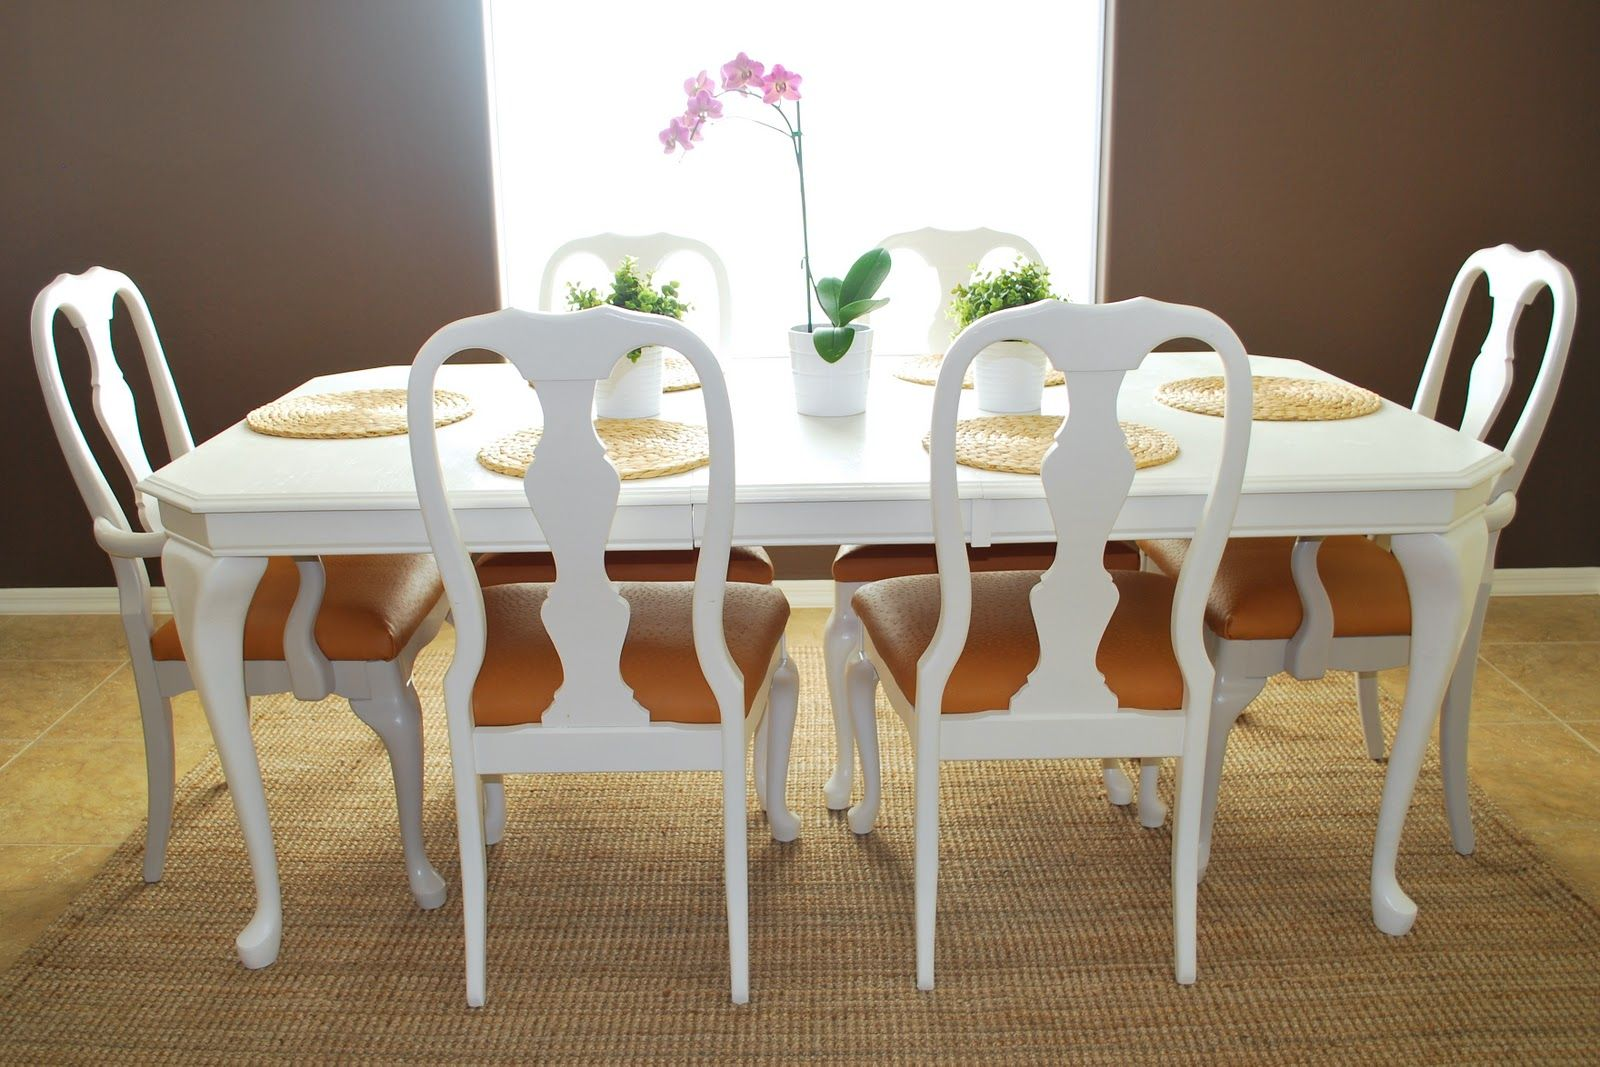 Wonderful Refinished Dining Room Table And Chair Re Upholstery Tutorial (3)